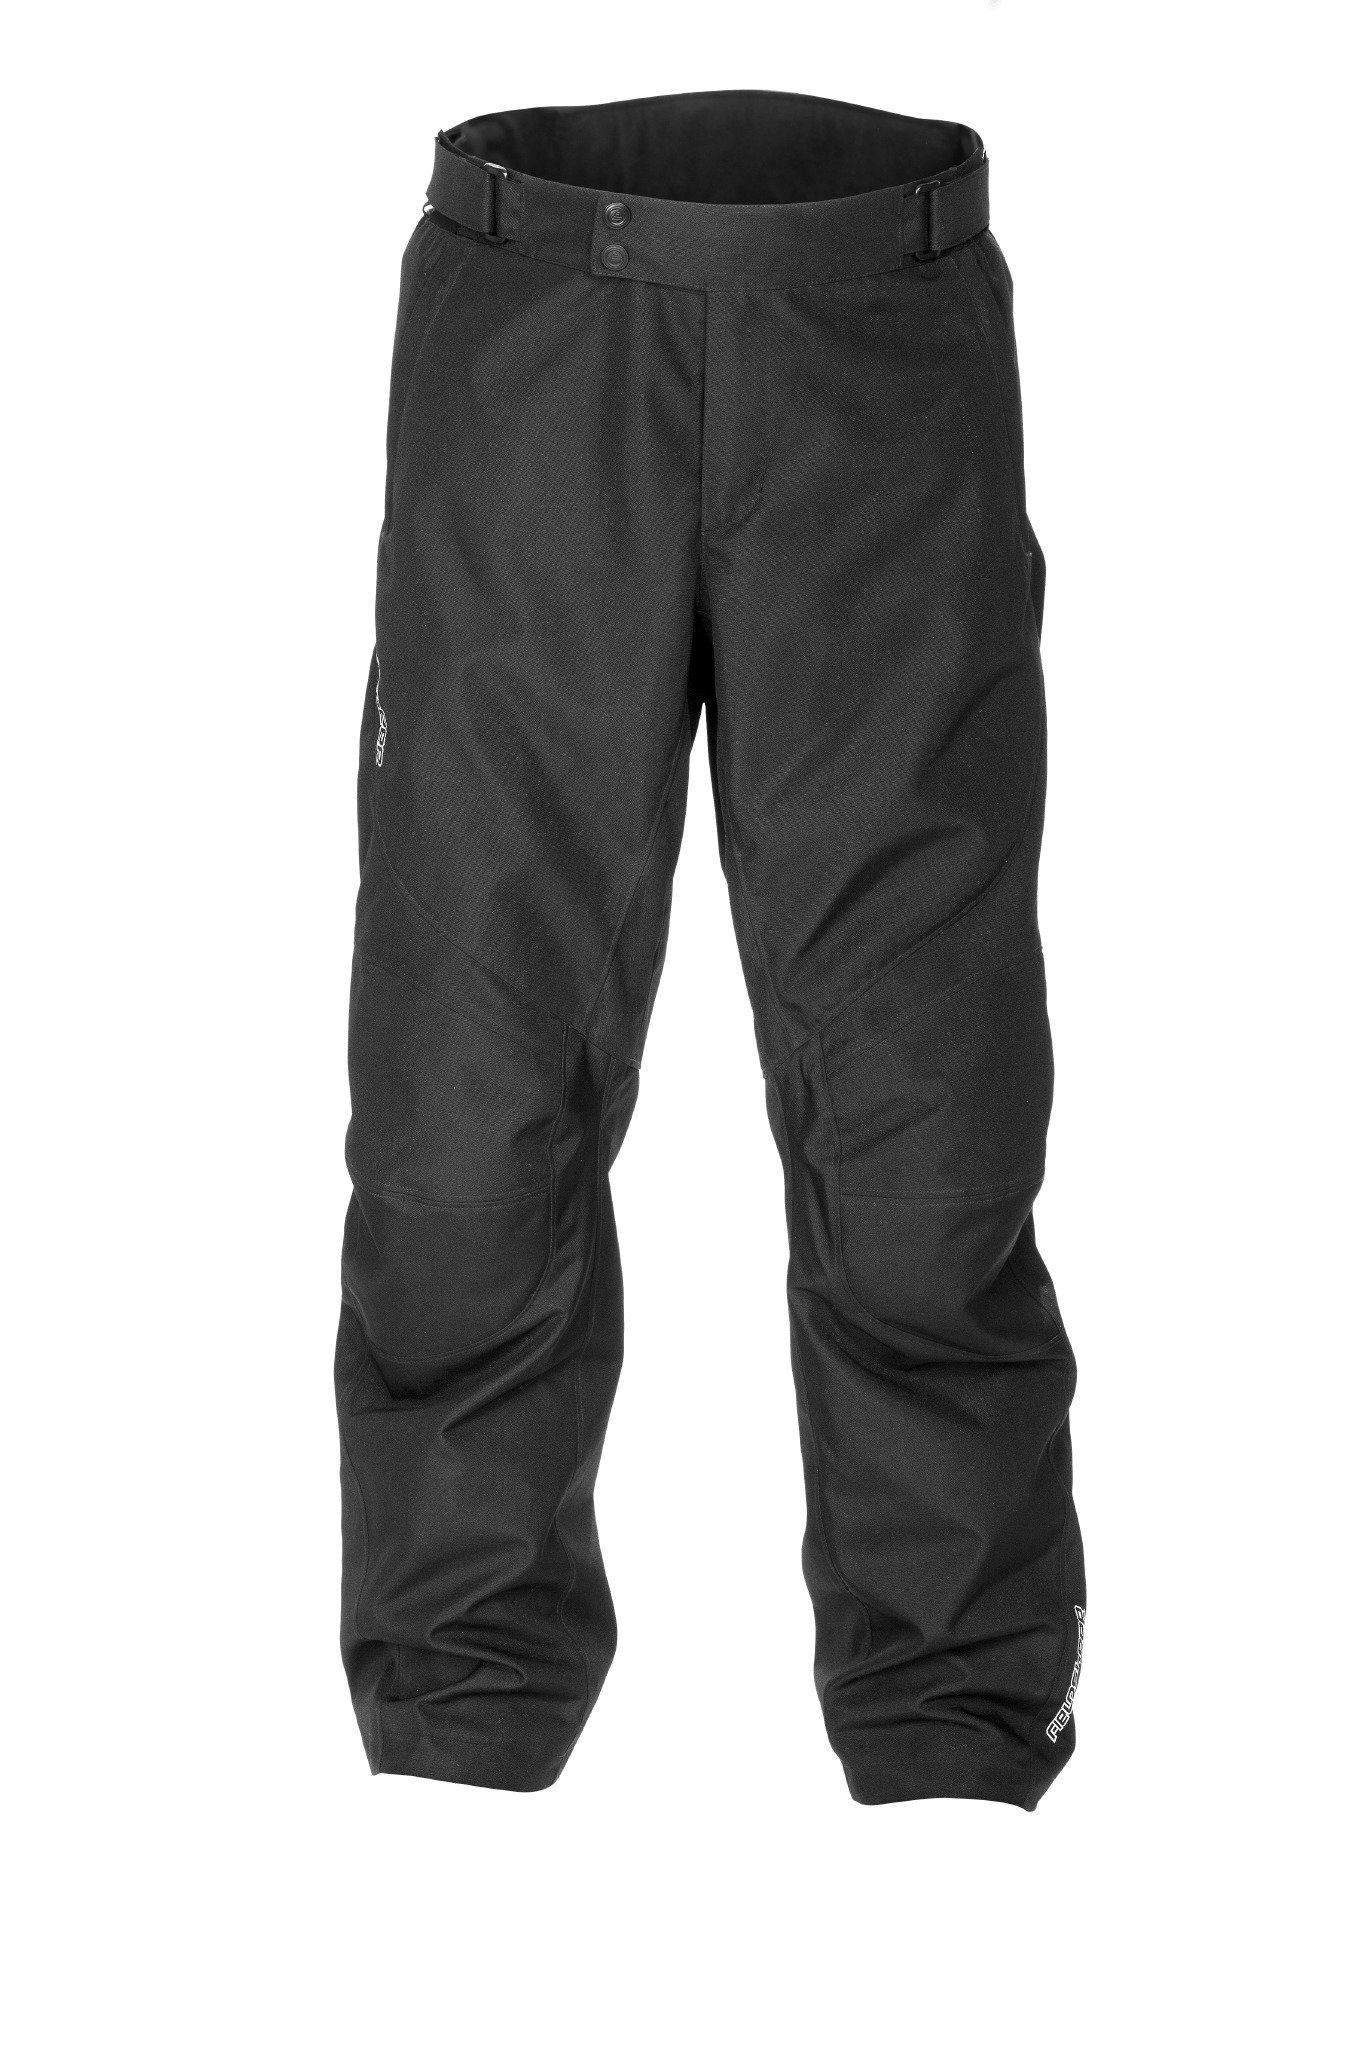 Fieldsheer Men's McKinney Pant (Black, Medium)